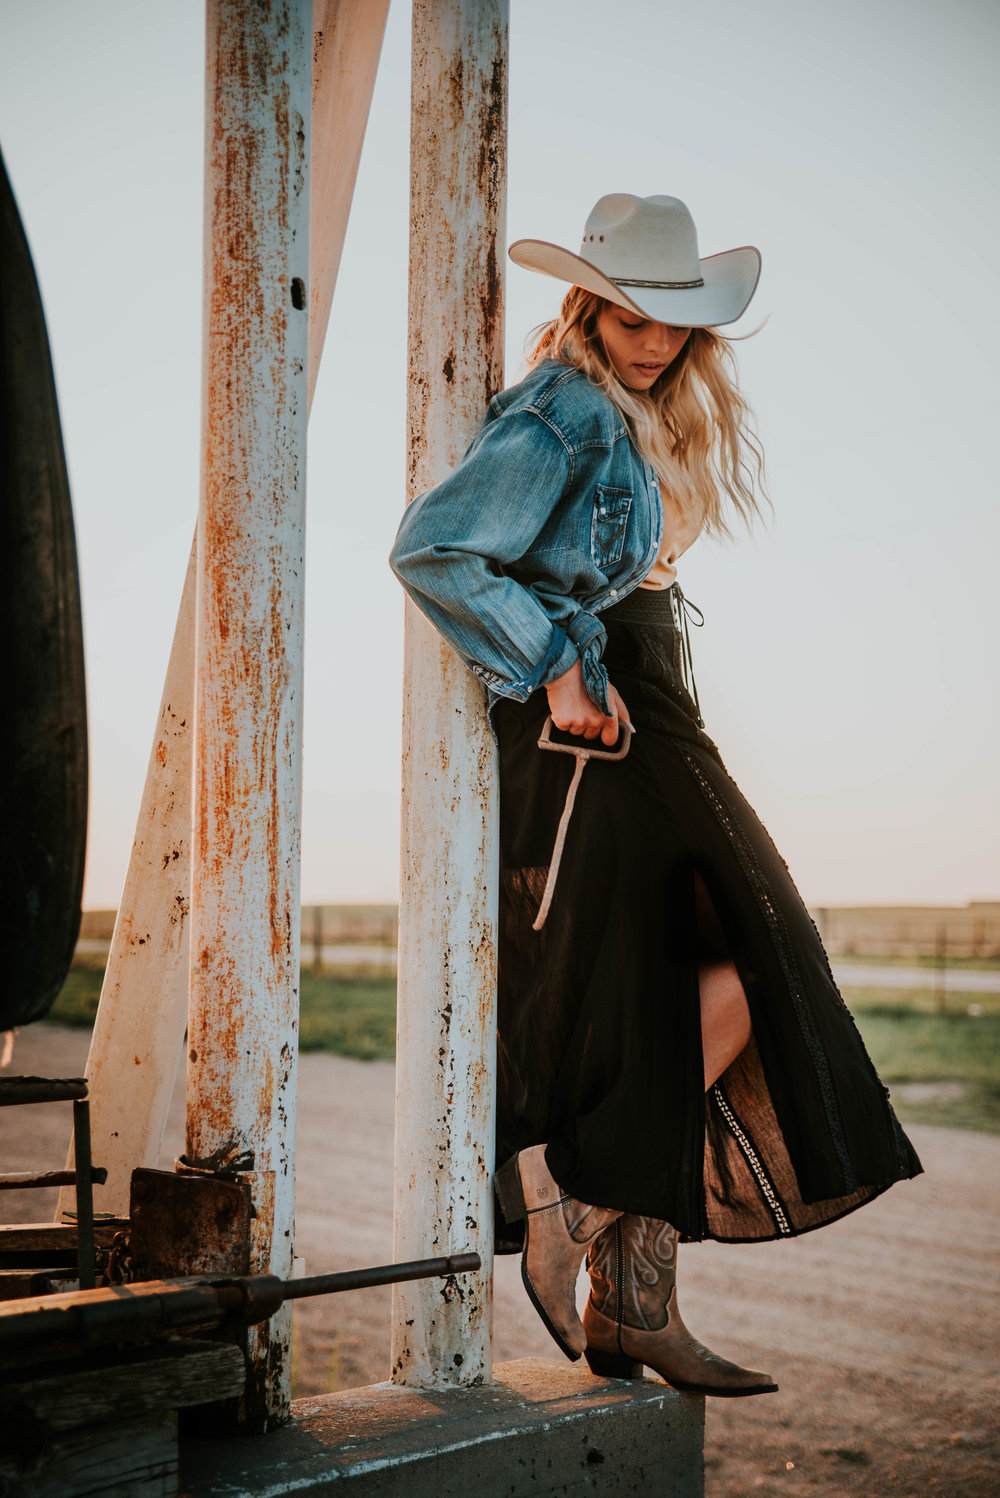 Miss. Miller's Photography | Lindsay Miller | Durango Boots | Black Western Skirt | Wrangler Fashion | Western Fashion | Cattle | Cowgirl Fashion | Western Senior Pictures